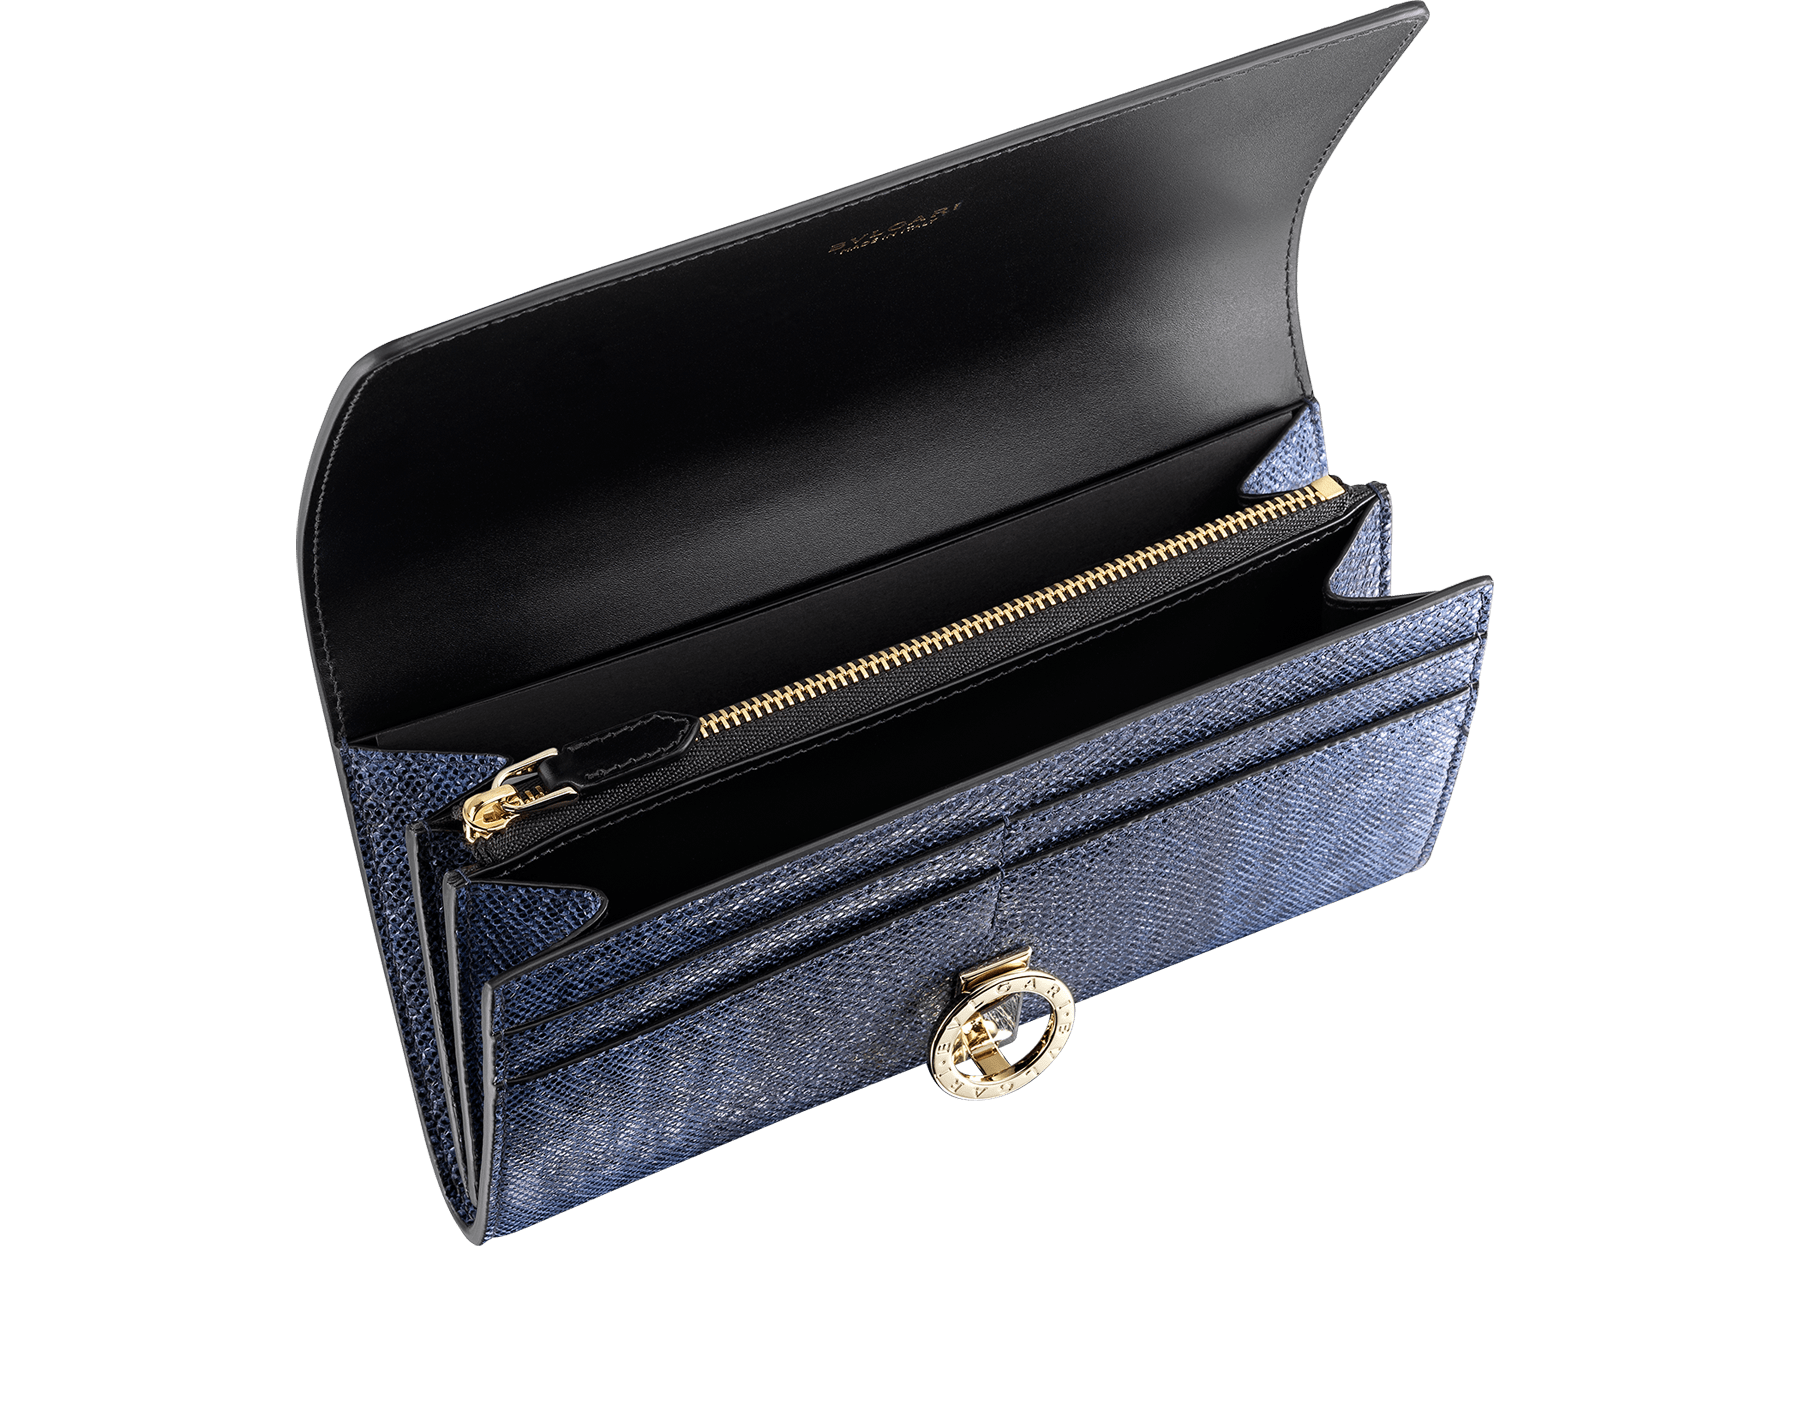 """BVLGARI BVLGARI"" large wallet in metallic Midnight Sapphire blue karung skin and black calfskin. Iconic logo clip closure in light gold-plated brass. 579-WLT-POCHE-16CC-MK image 2"